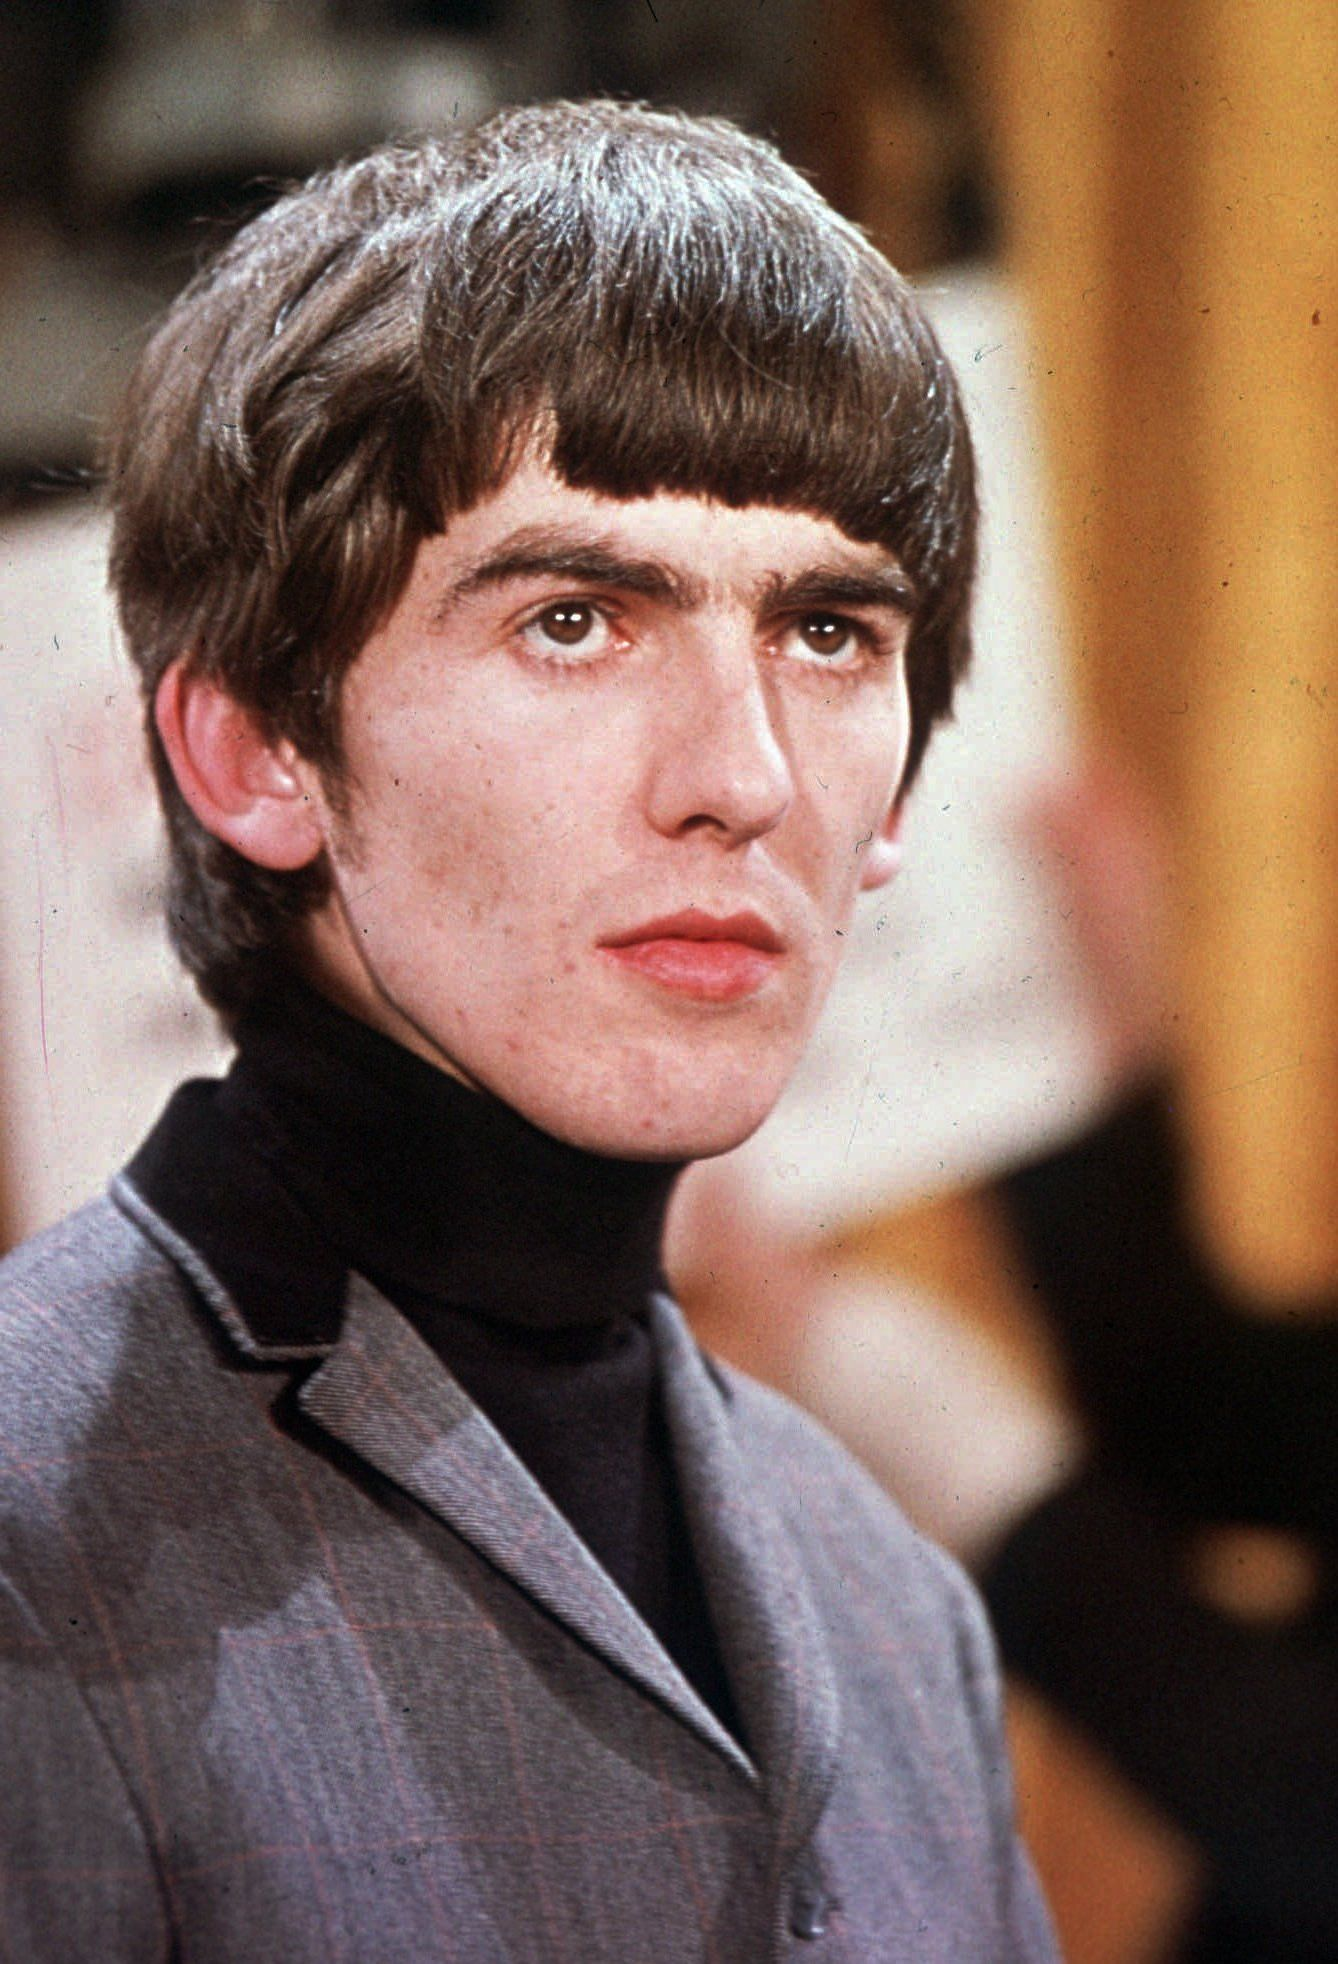 George Harrison is shown in this 1964 photo. (AP Photo)